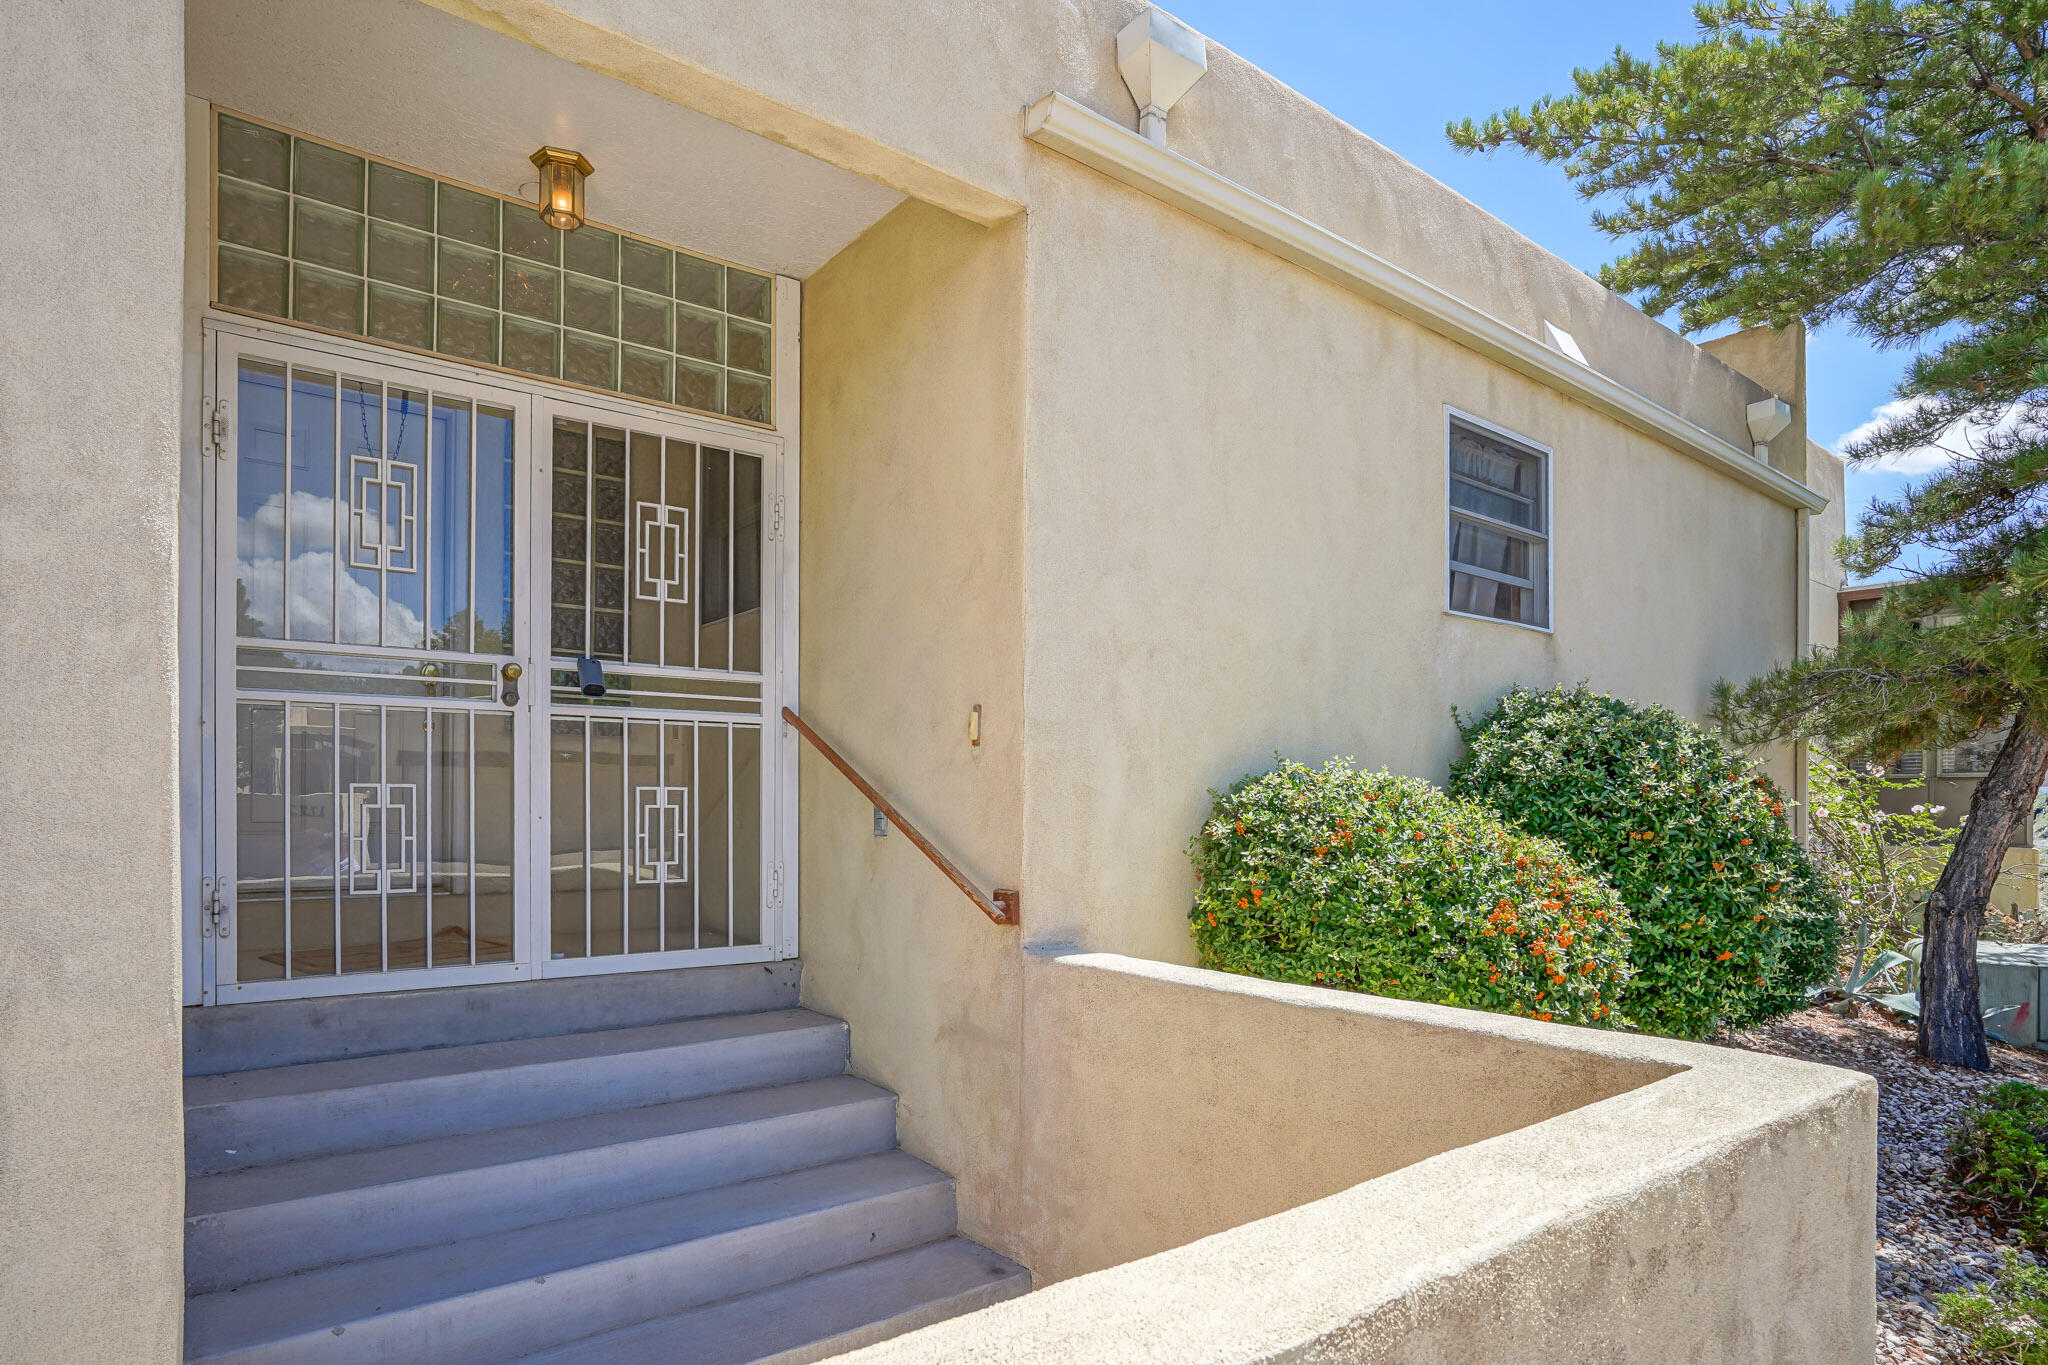 Wonderful Zero Lot line Home with a 11 by 50 foot Enclosed backyard .Home  features four bedrooms plus a Two car garage plus an additional 20 X 13 work area not in heated sq ft  Living Room has 14ft Ceilings and Clearstory windows. Original owner well cared for .Super UNM location.  Near Whole  Foods at Carlisle and the freeway I40 and I25Tennis Club close by as well as UNM North Golf Course and Altura Park , Montezuma and SmithsNewer Hot water heater with Recirculation pump.